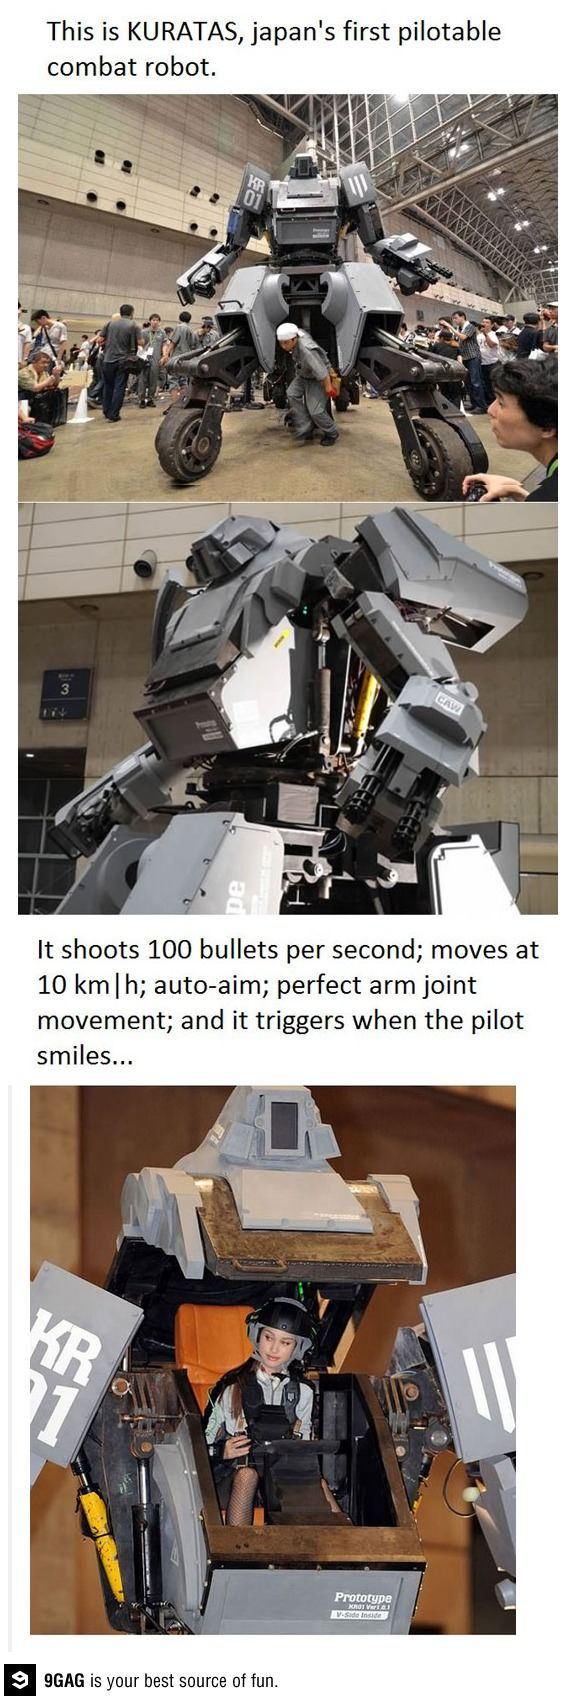 92 Best Robots Images On Pinterest Science Robot And Robotics Land Rover D90 O Demeter Wiring Diagram Every Other Mans Dream